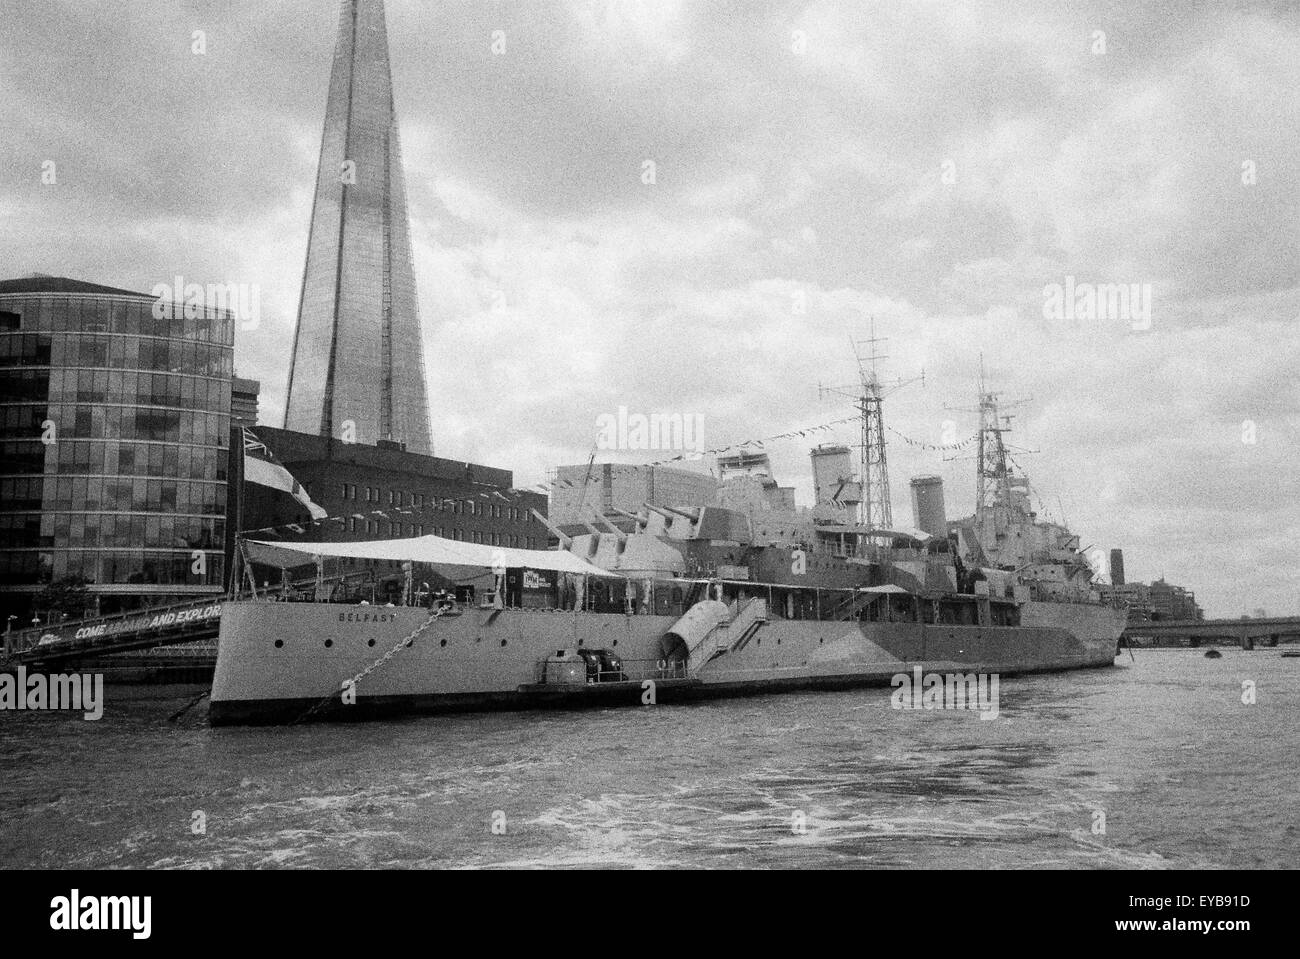 London tourist sights - HMS Belfast and the Shard seen from the river Thames, heavy grain from HP5 film - Stock Image